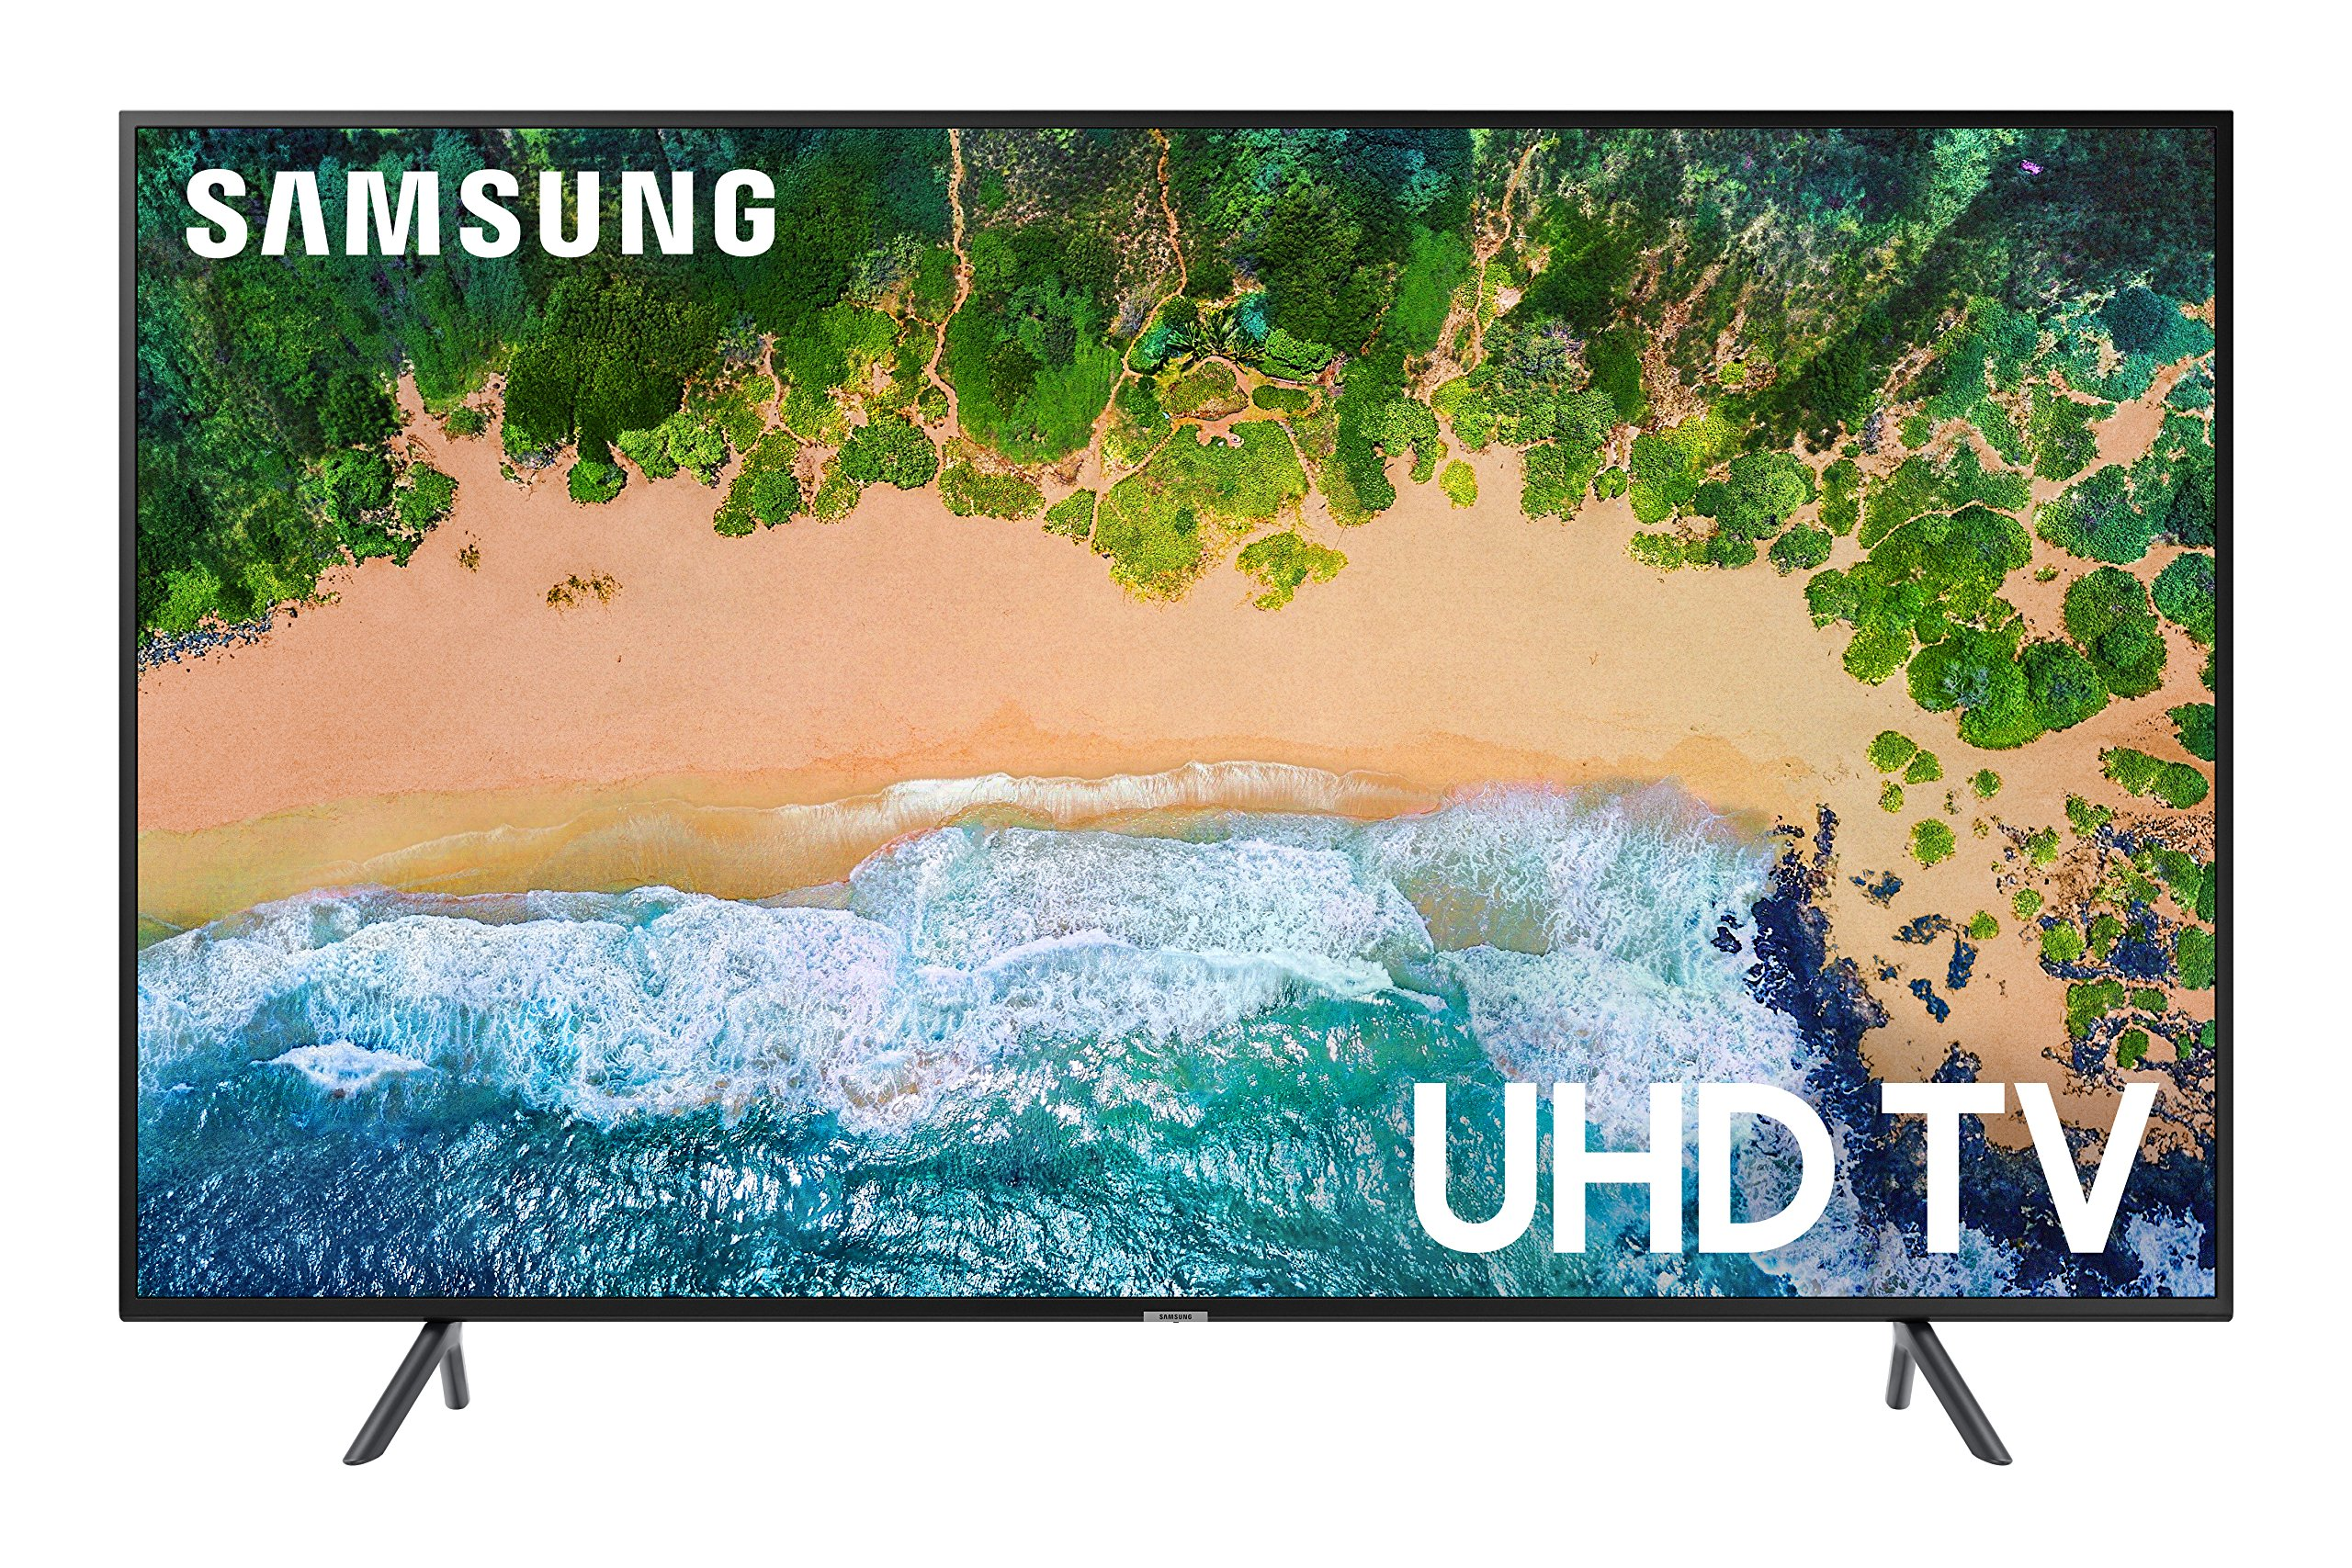 Samsung UN50NU7100 Flat 50'' 4K UHD 7 Series Smart TV 2018 by Samsung